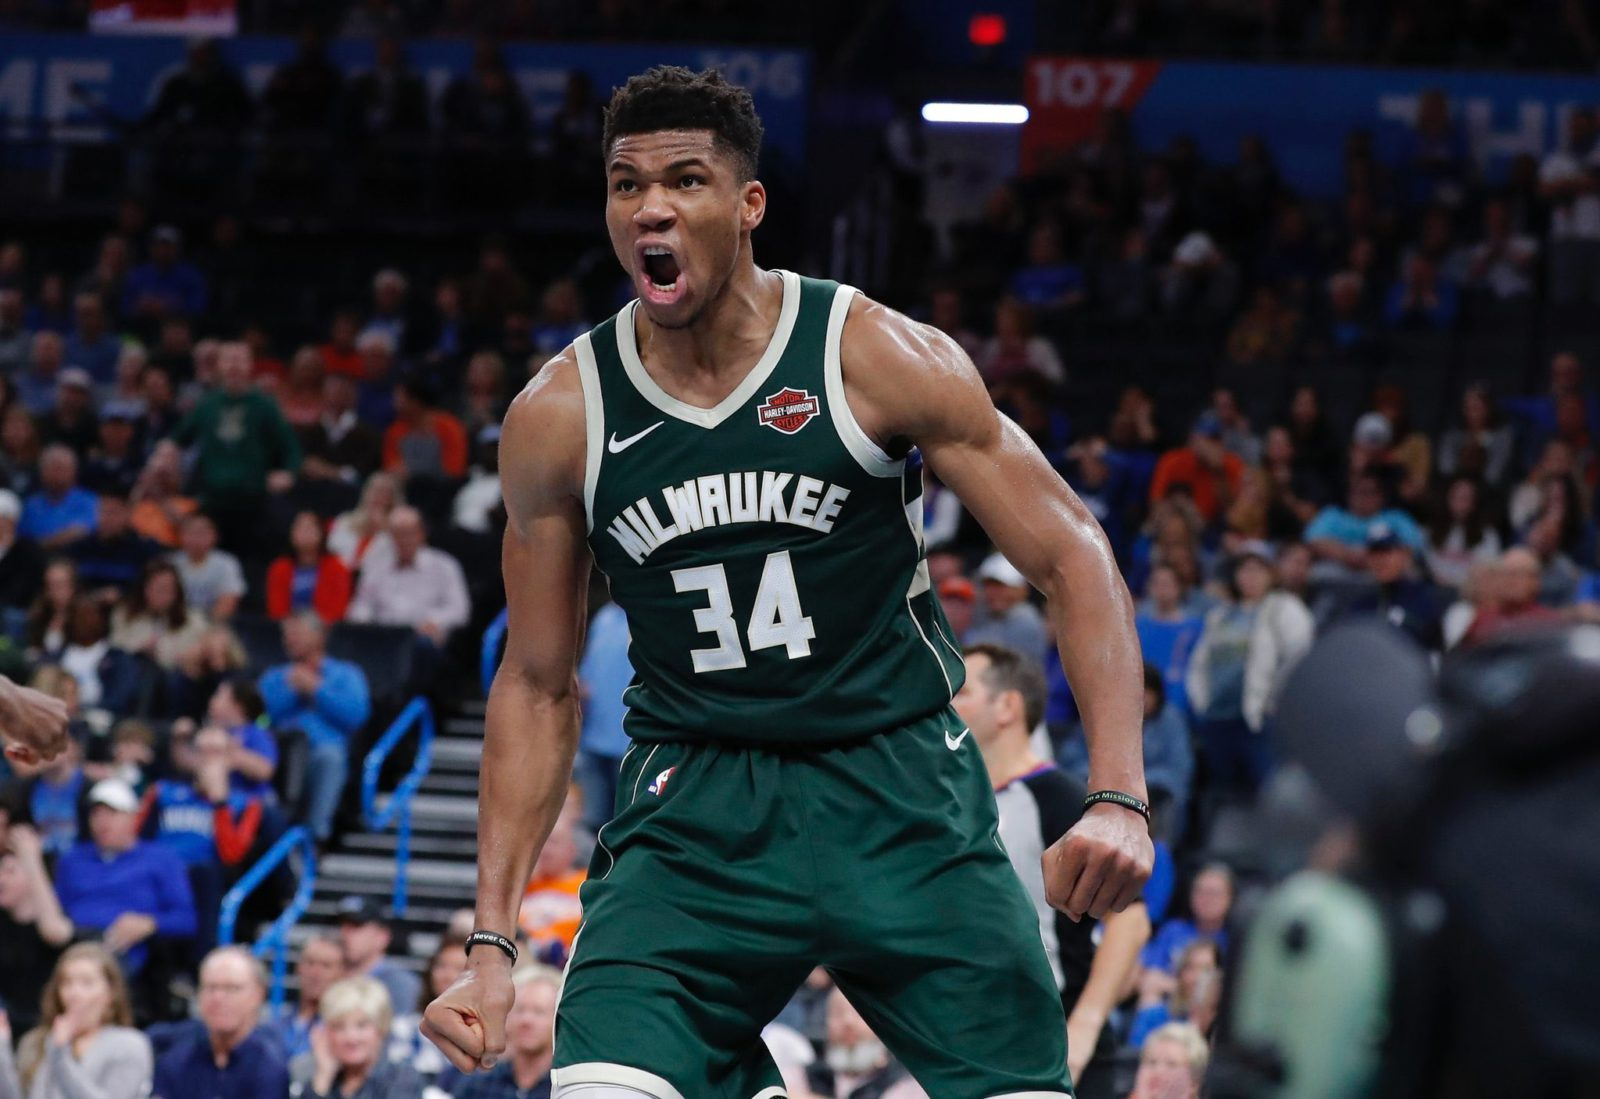 Giannis Antetokounmpo wins NBA MVP award for 2nd straight season - THE SPORTS ROOM